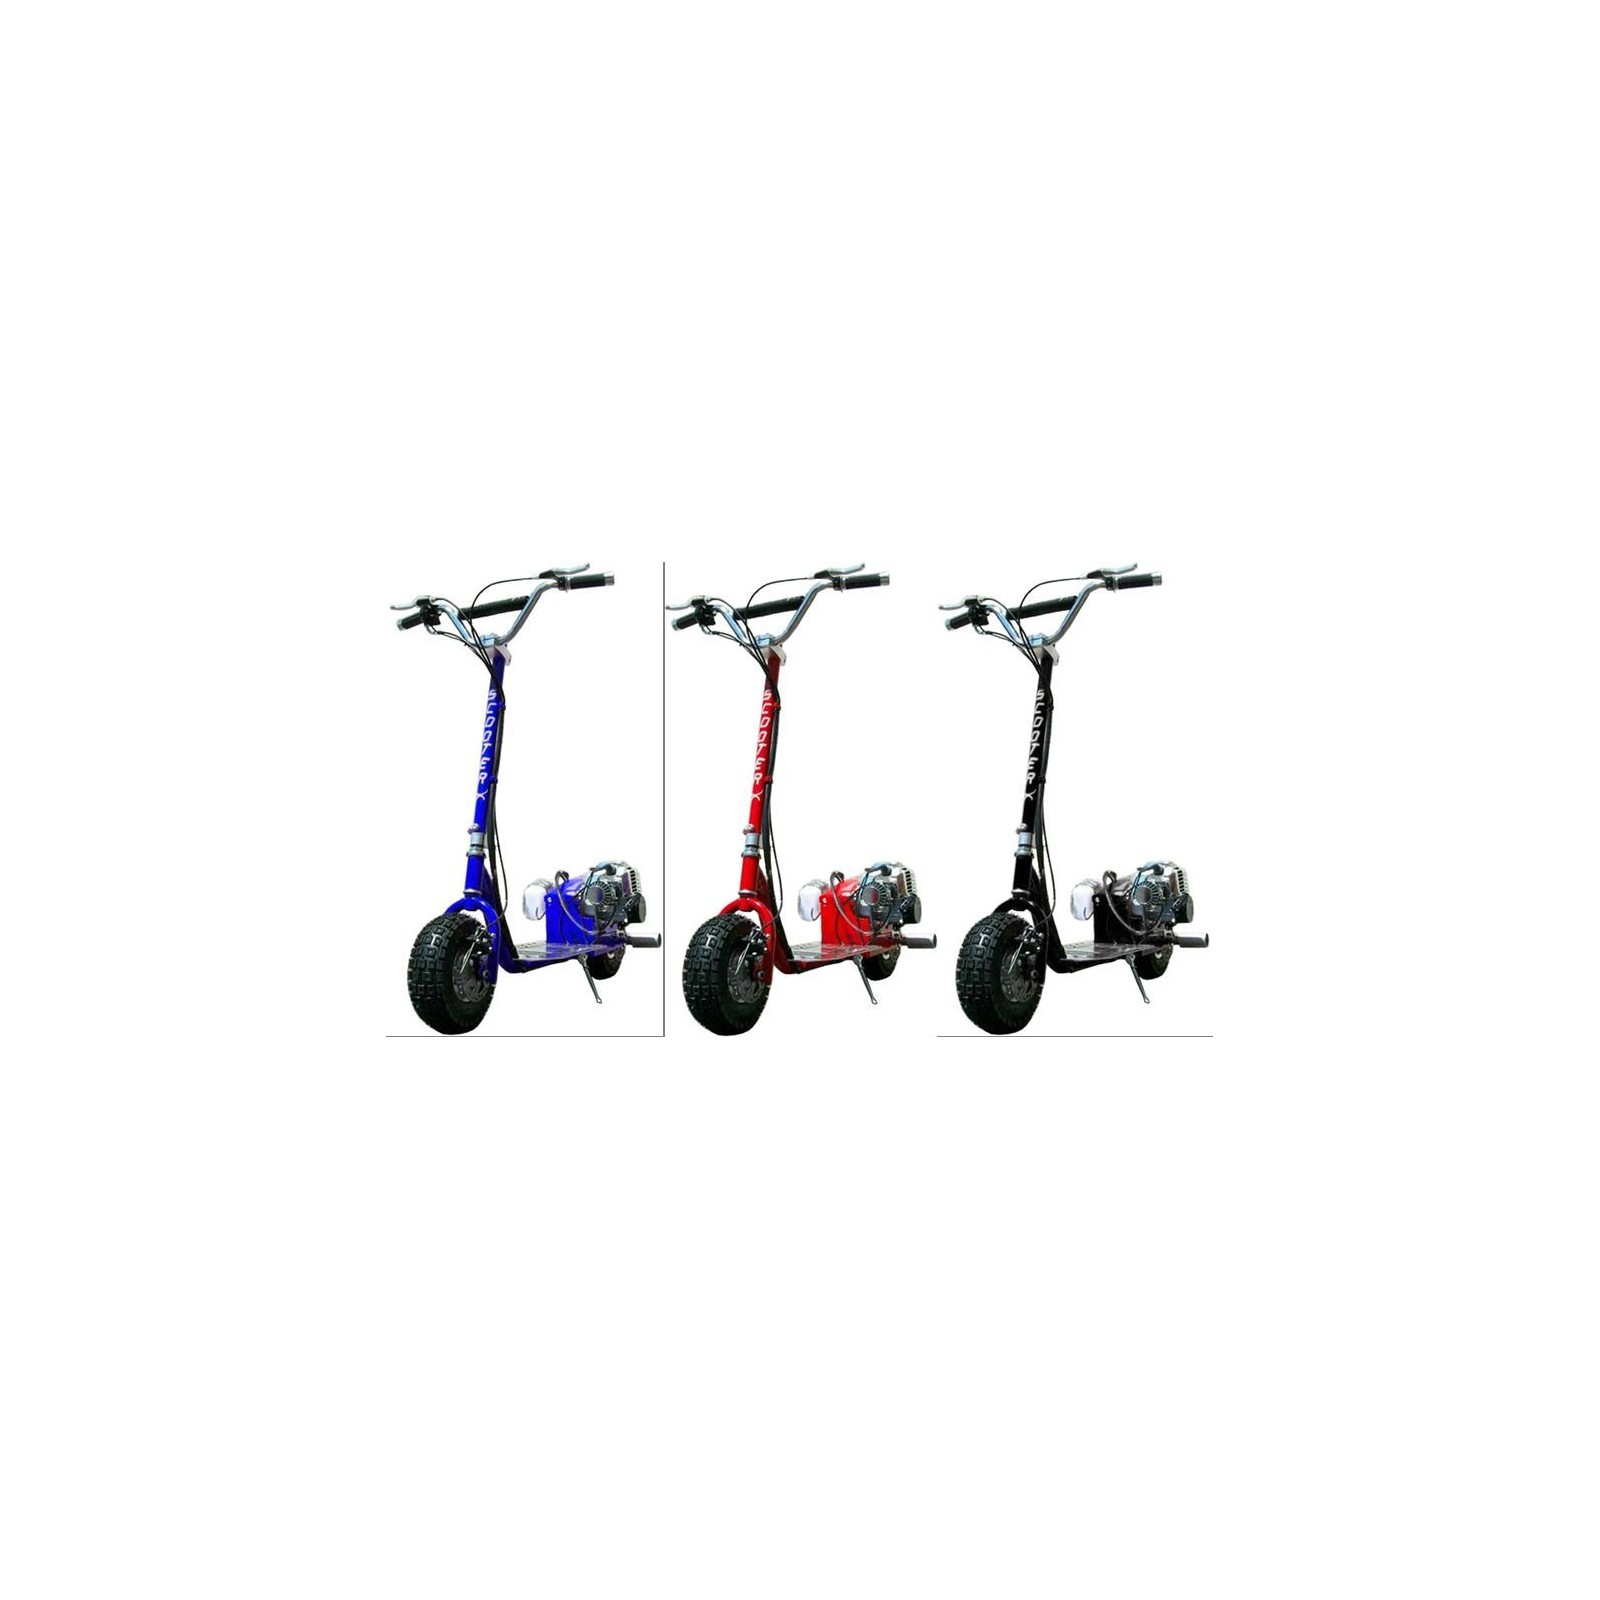 scooterx dirt dog 49cc gas powered scooter with speeds up to 30mph